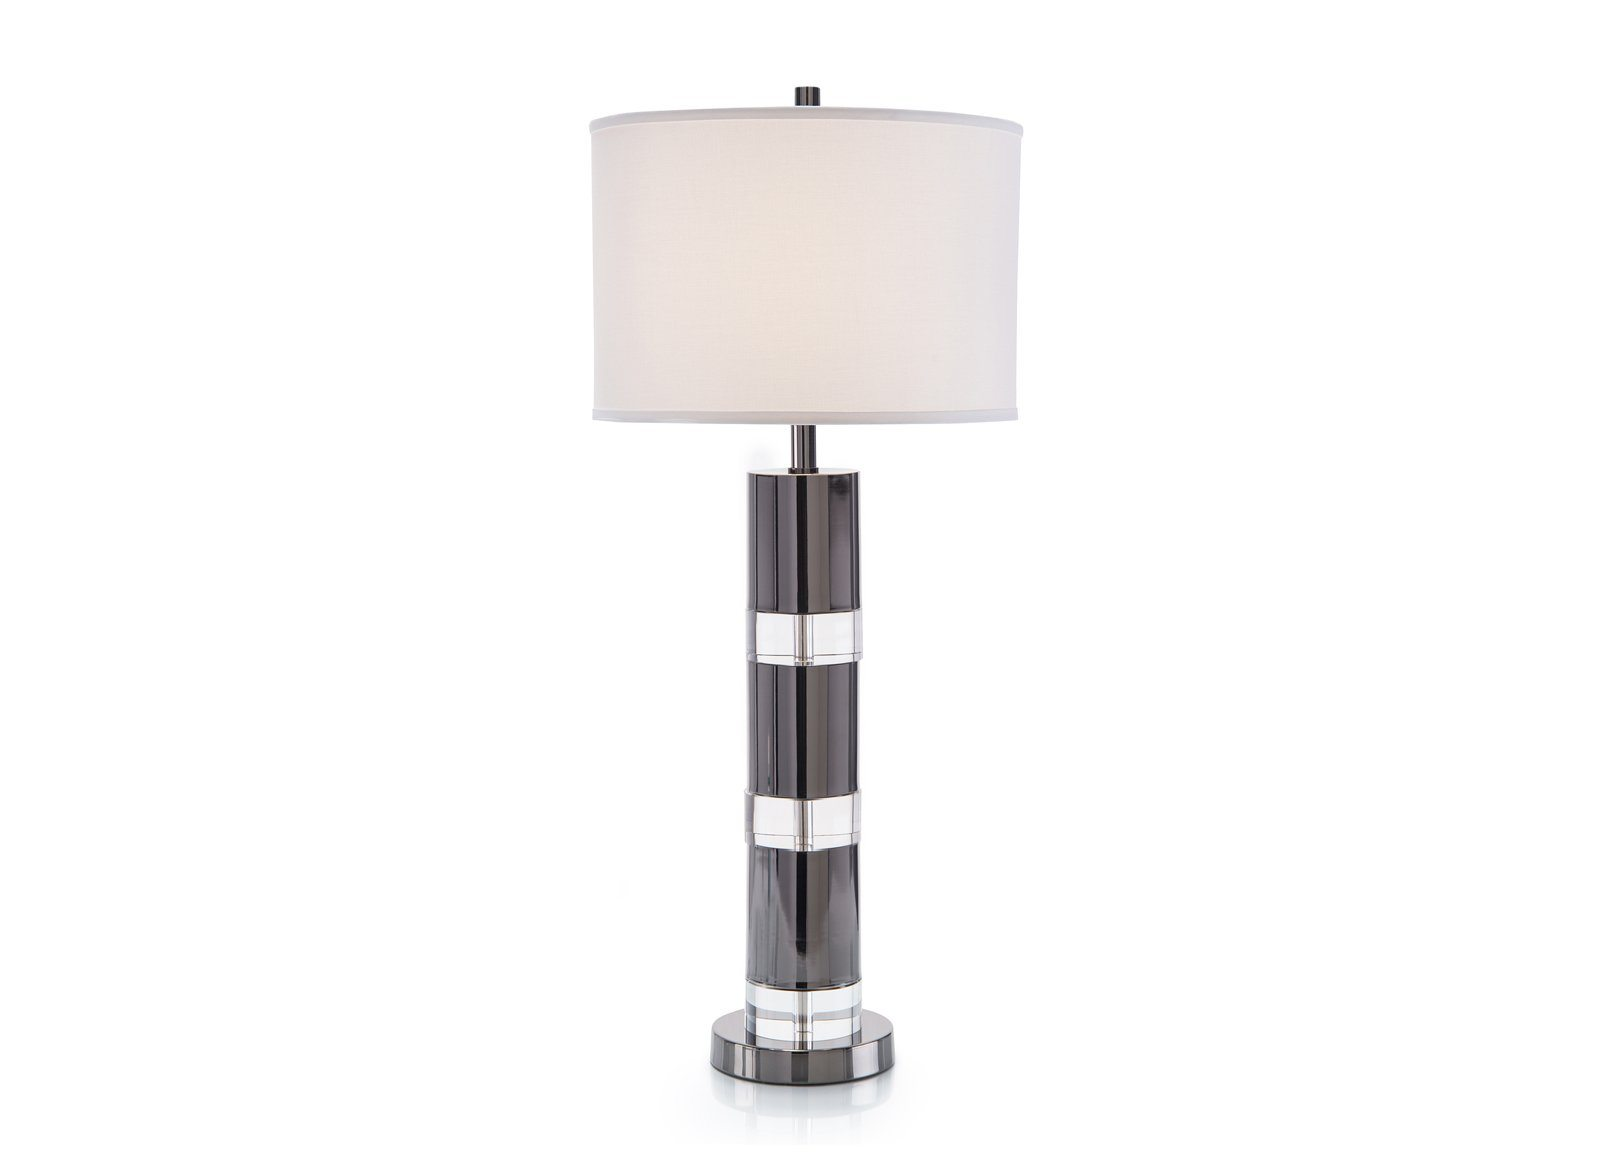 Bands of Plated Chrome Table Lamp